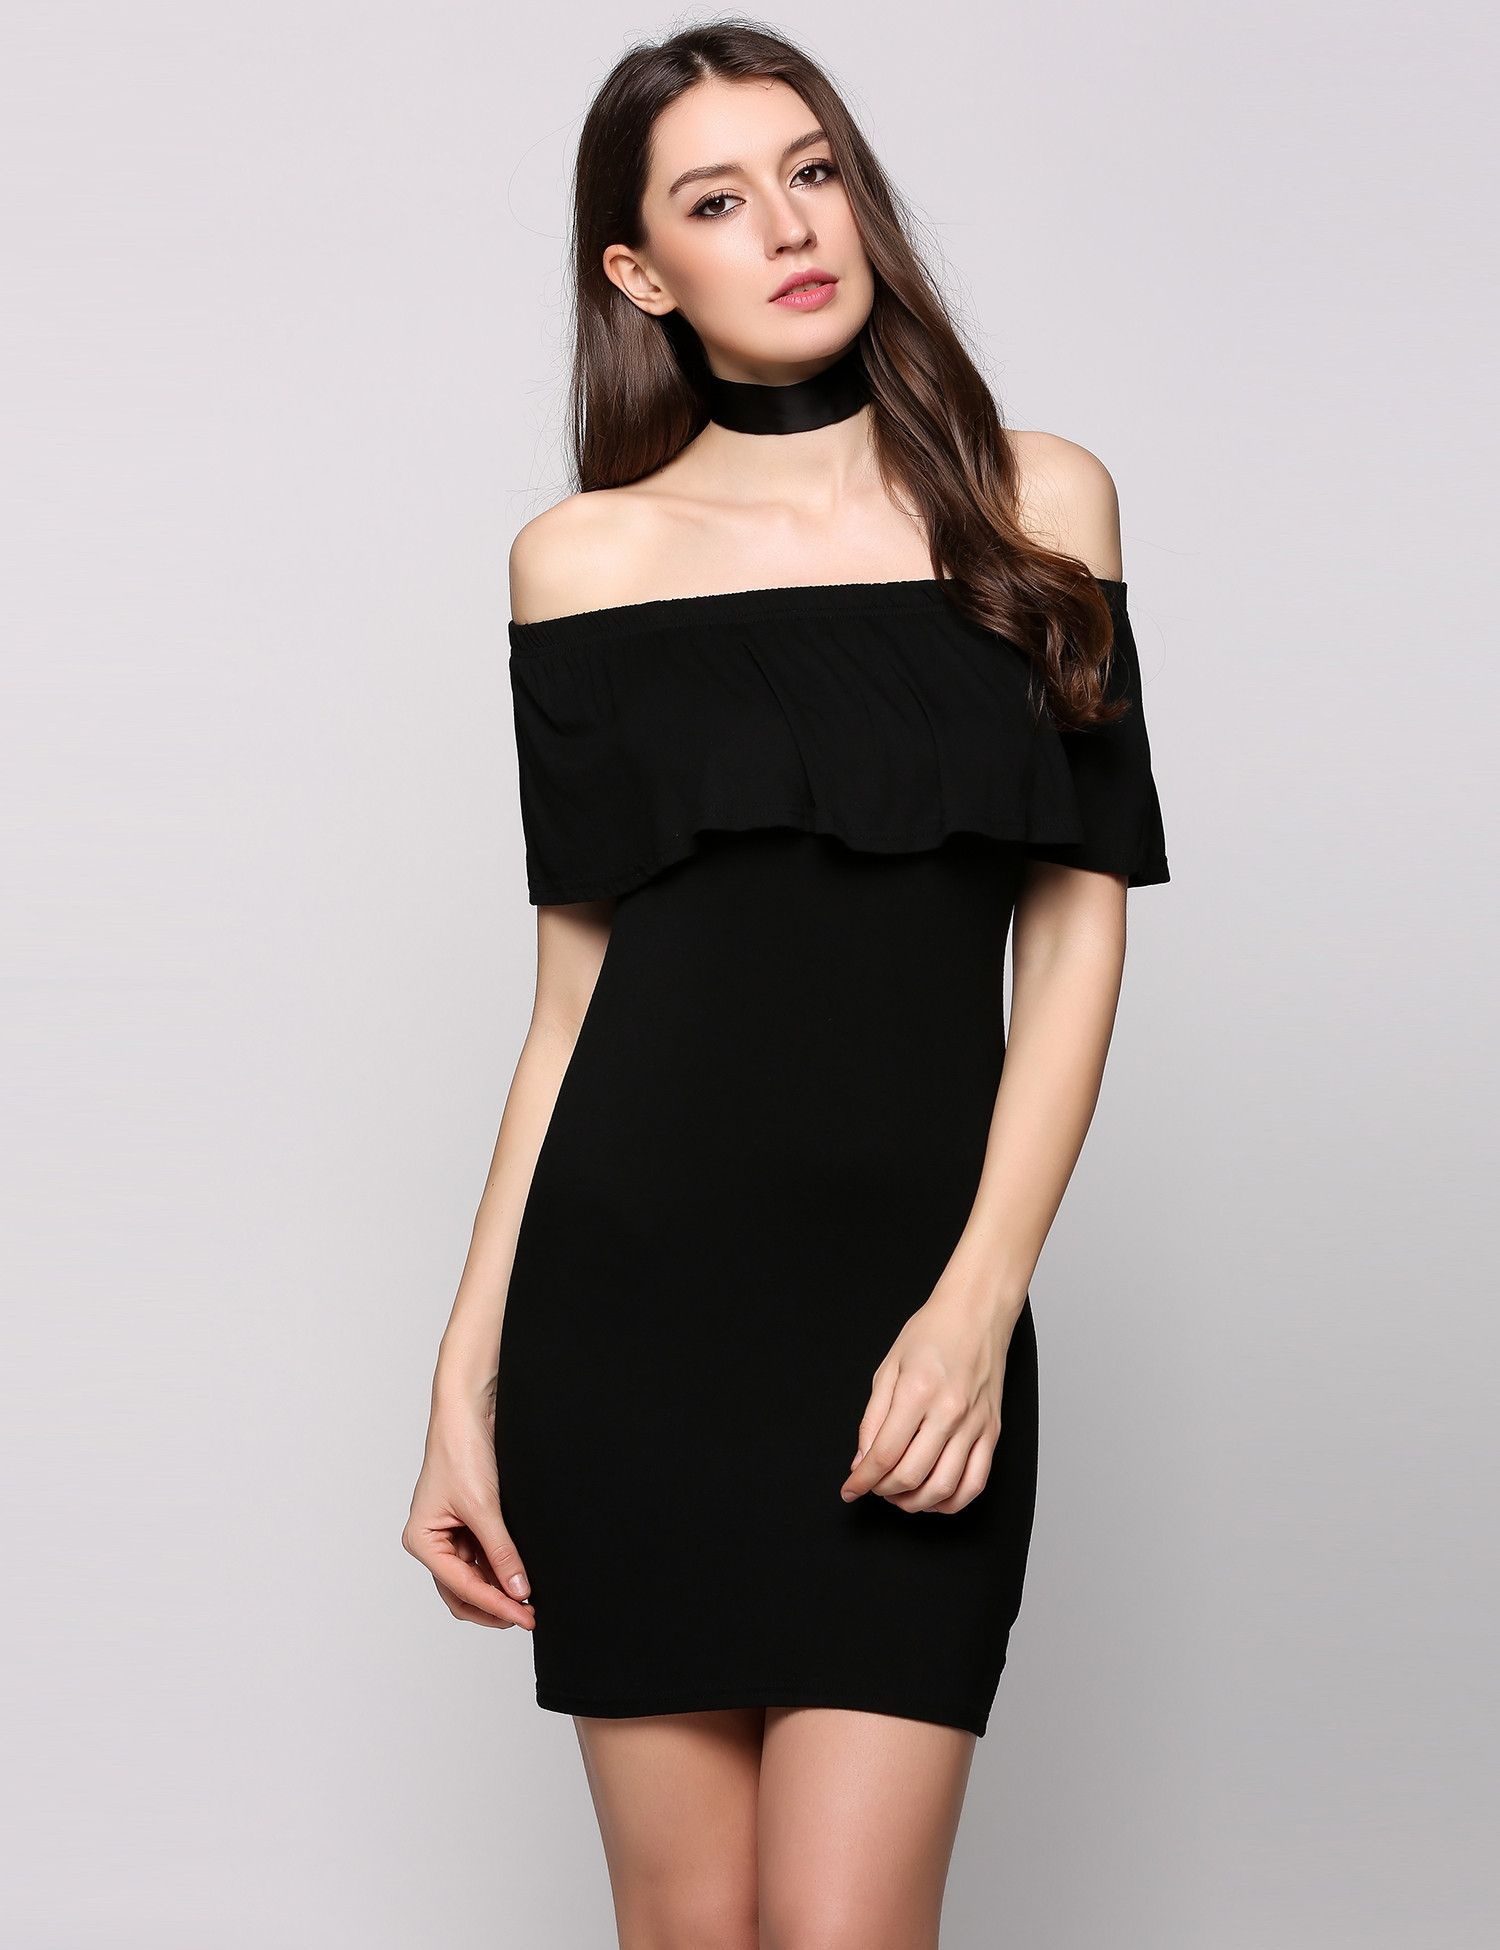 e828c78bb103 Black Sleeveless Ruffles Off The Shoulder Bodycon Solid Going Out Dress